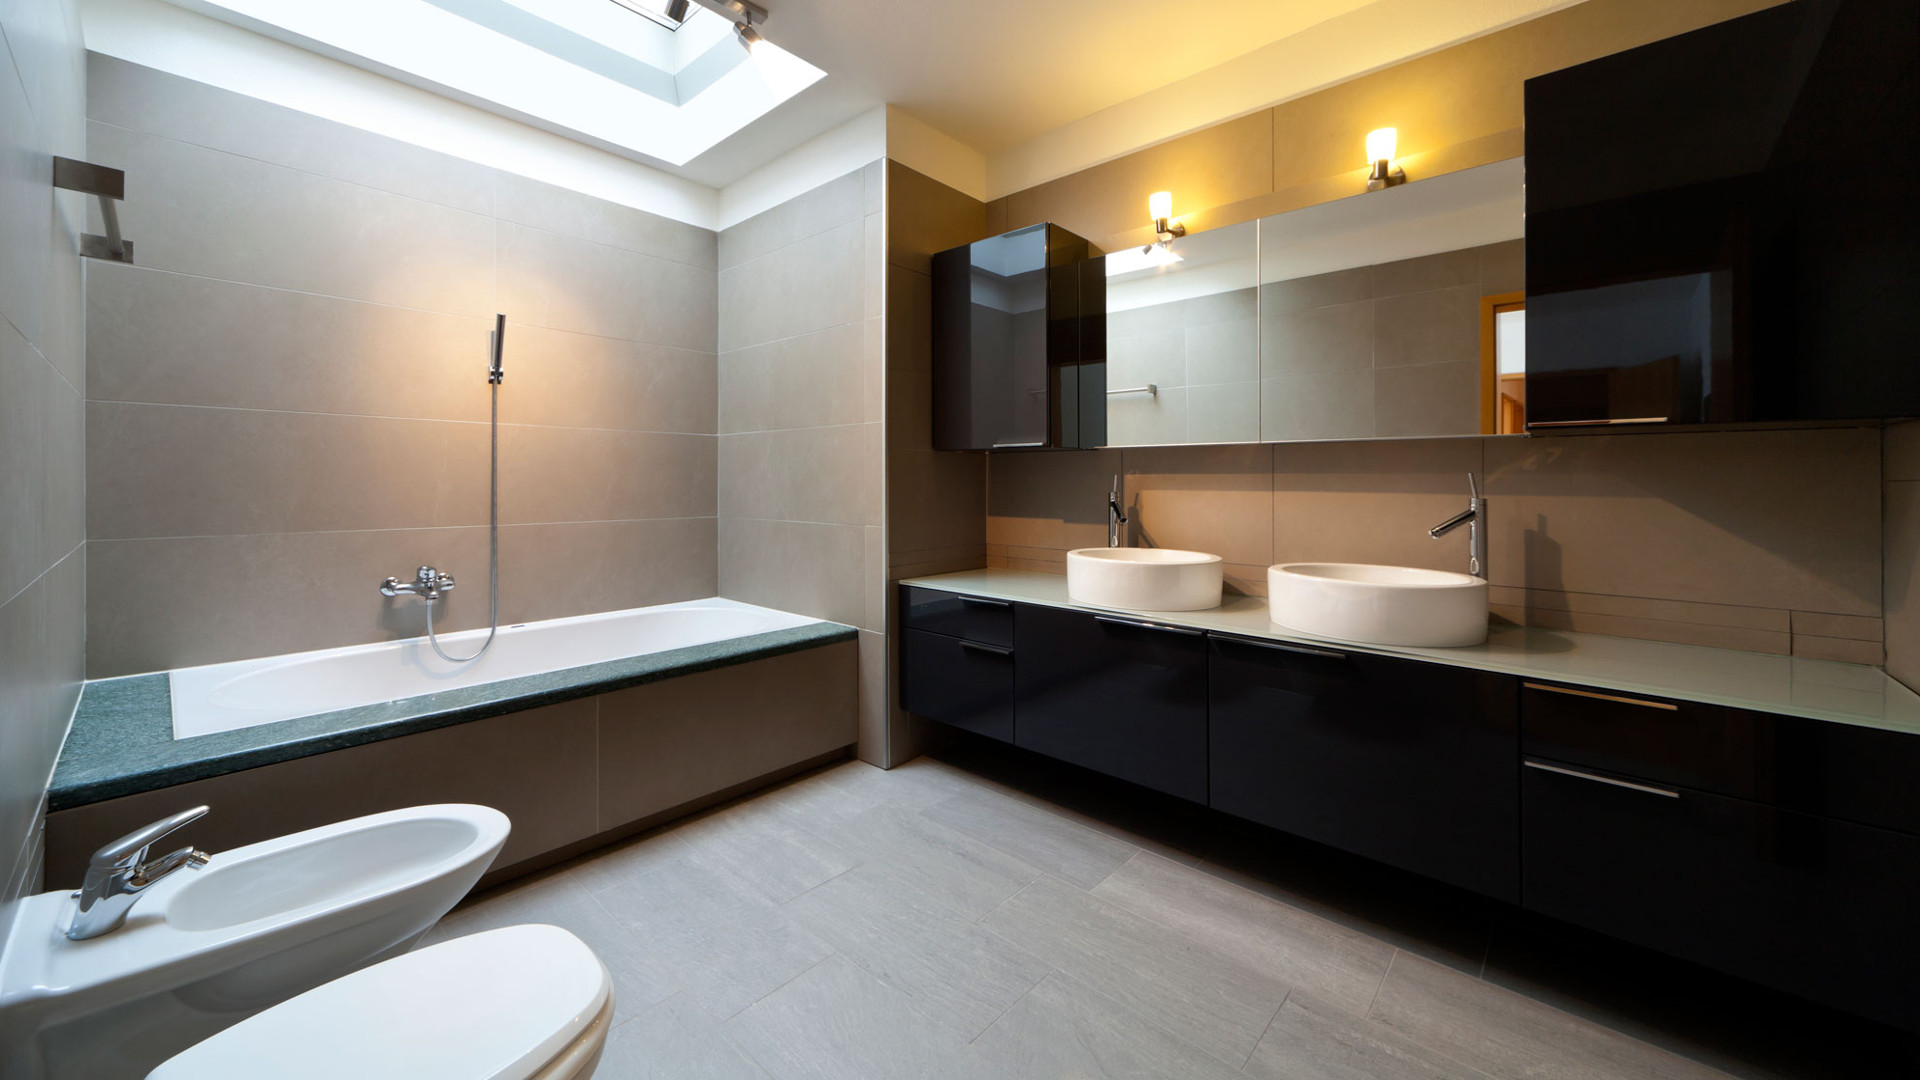 Bathroom Remodels Knoxville knoxville, lenoir city and morristown bathroom remodeling